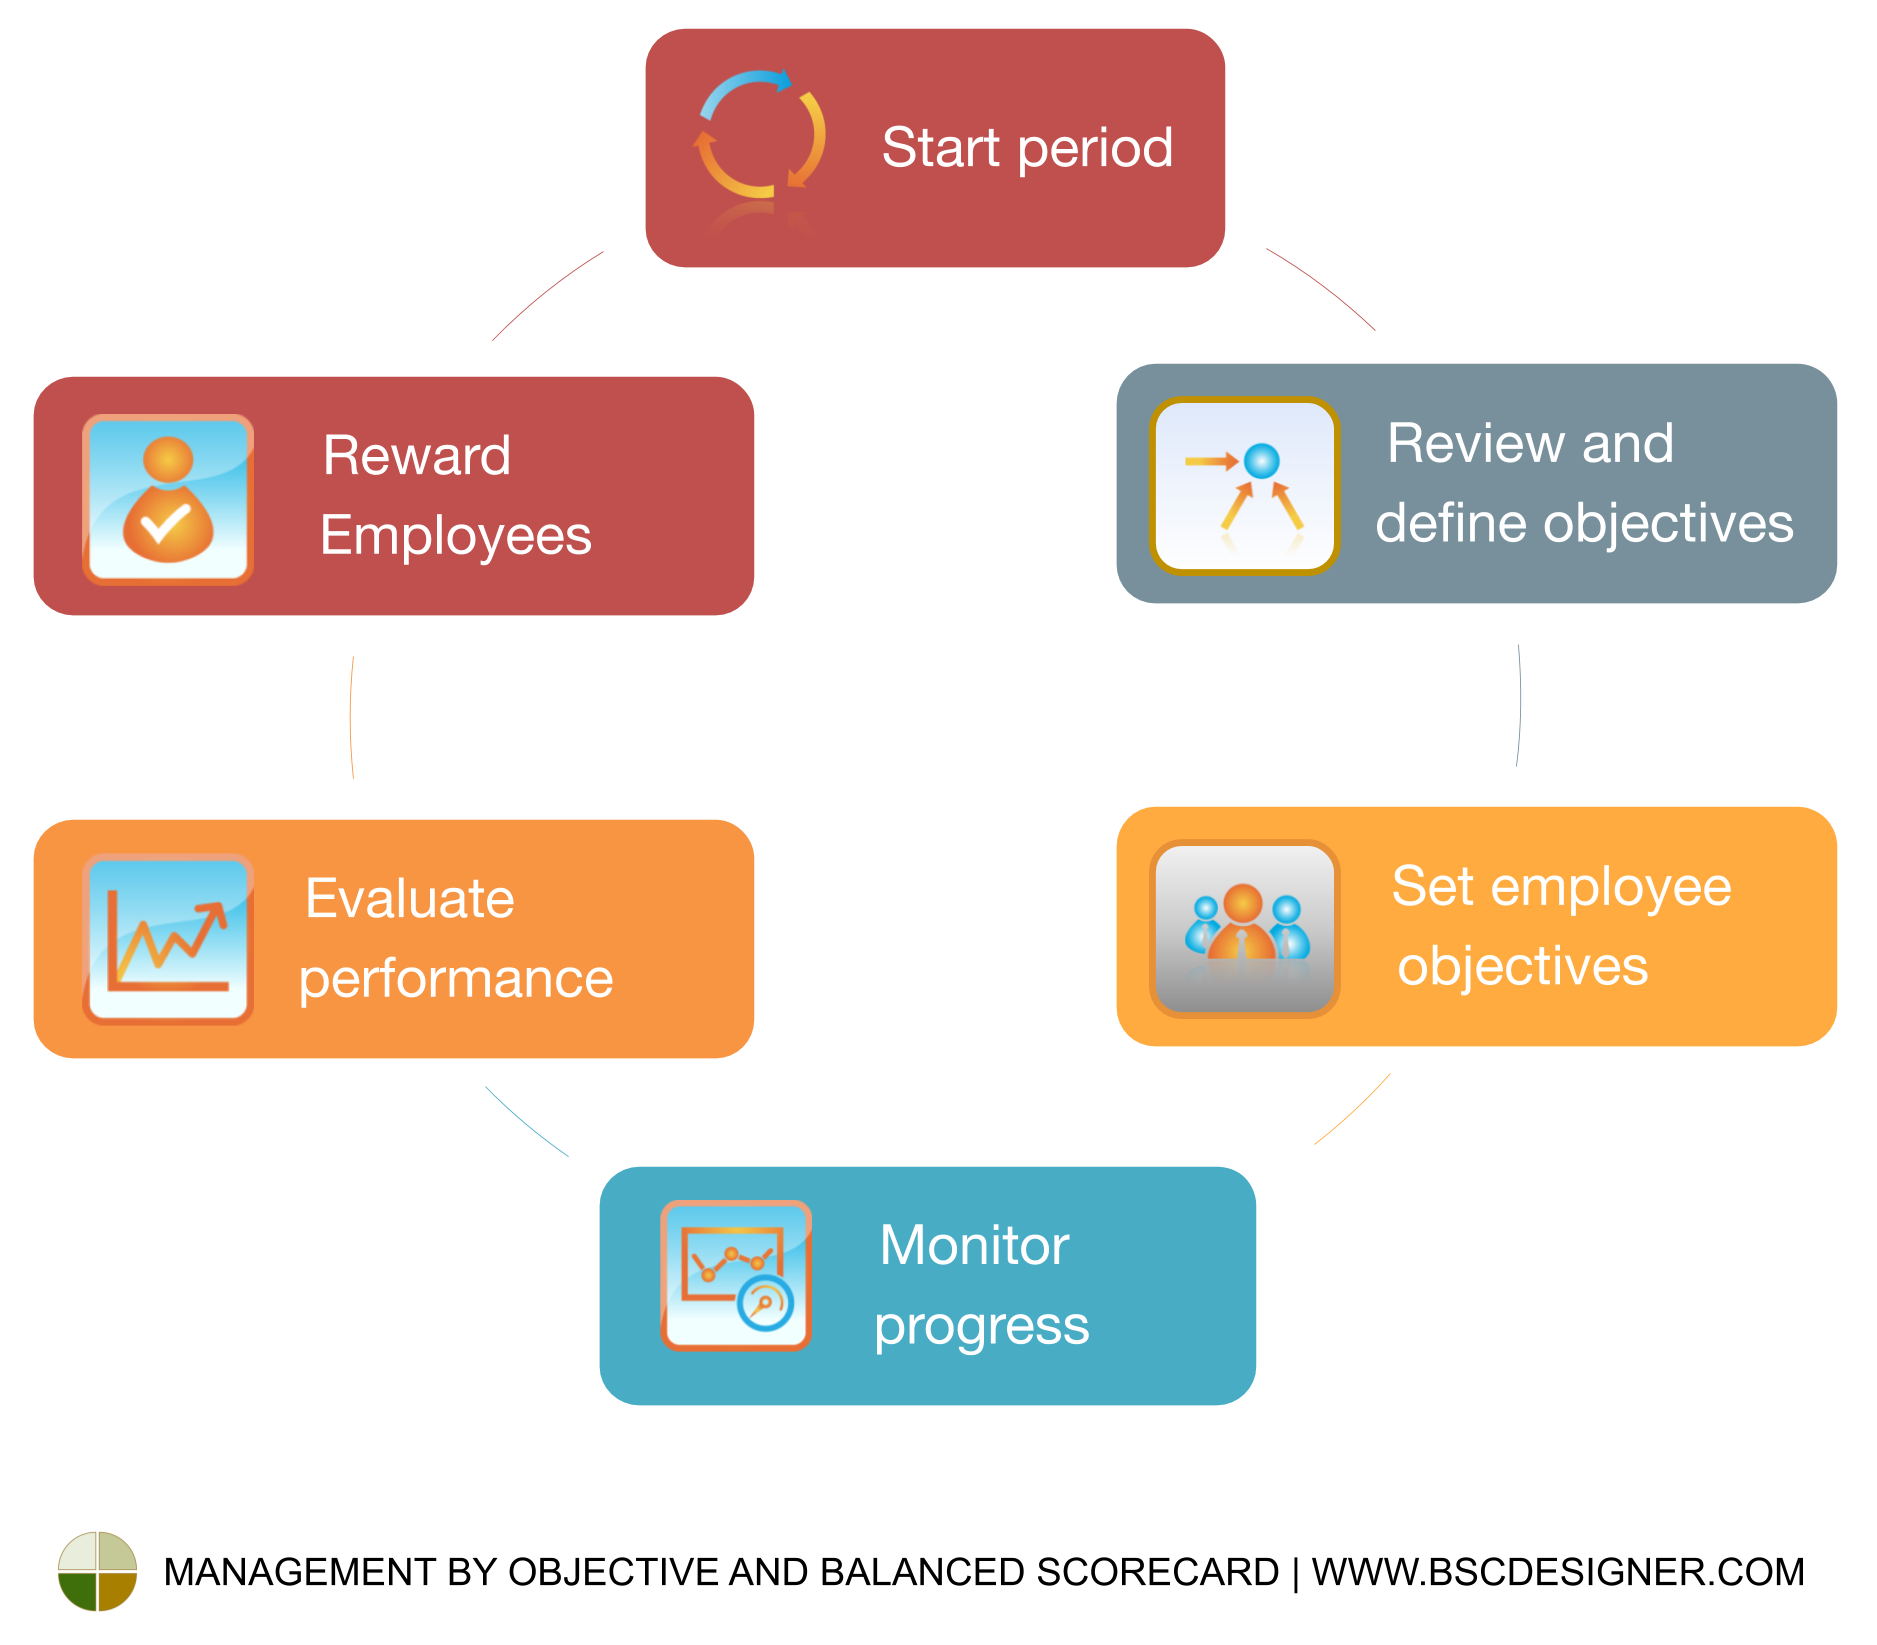 Management by objectives cycle